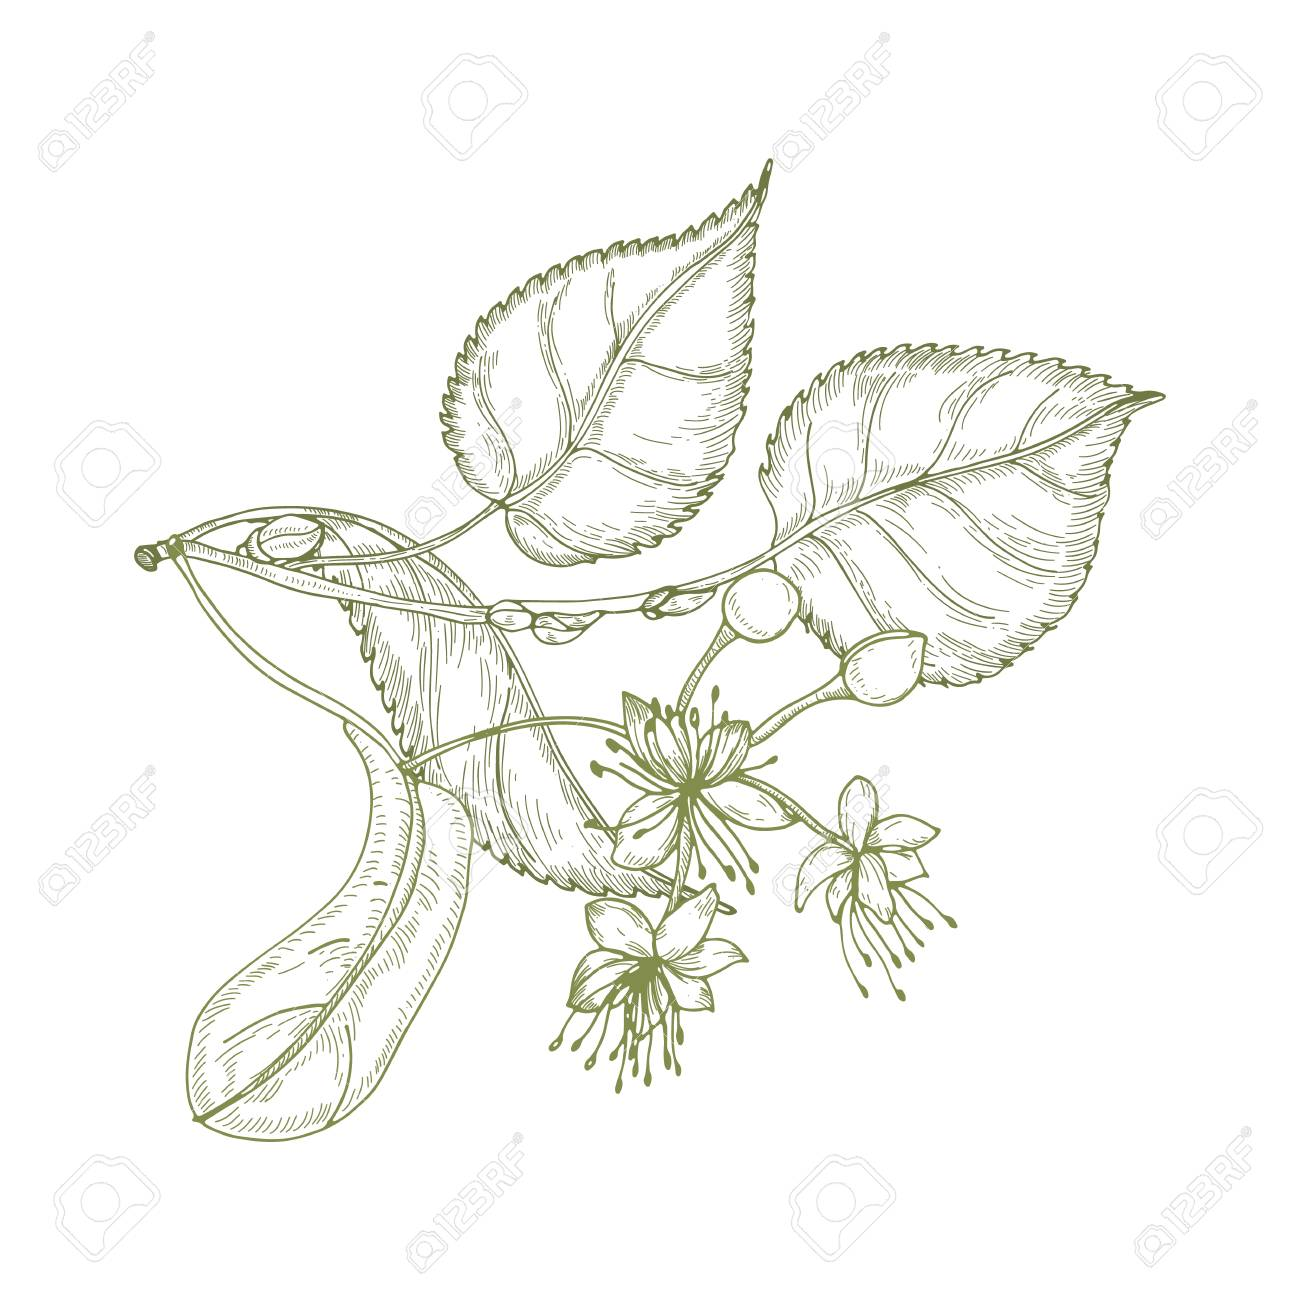 Elegant drawing of linden leaves, beautiful blooming flowers or inflorescence and buds. Plant used in phytotherapy hand drawn with contour lines on white background. Realistic vector illustration - 115162806